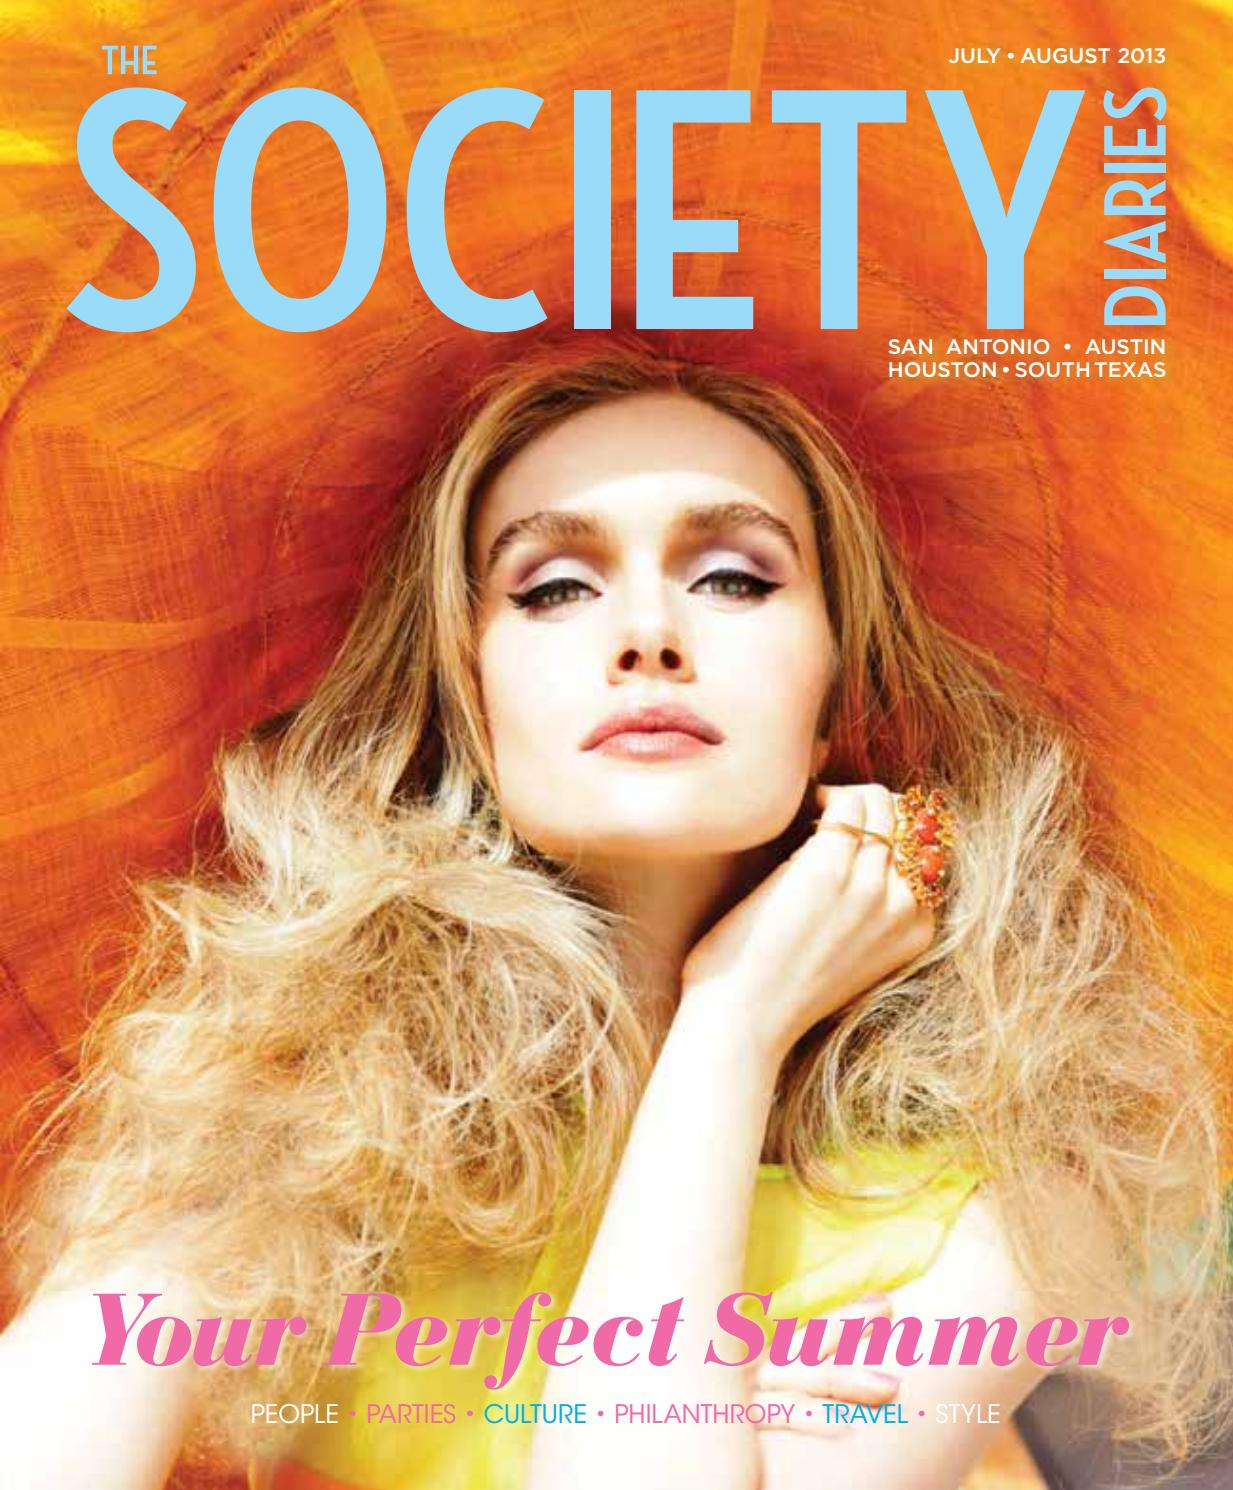 The society diaries july august 2013 by the society diaries issuu publicscrutiny Images